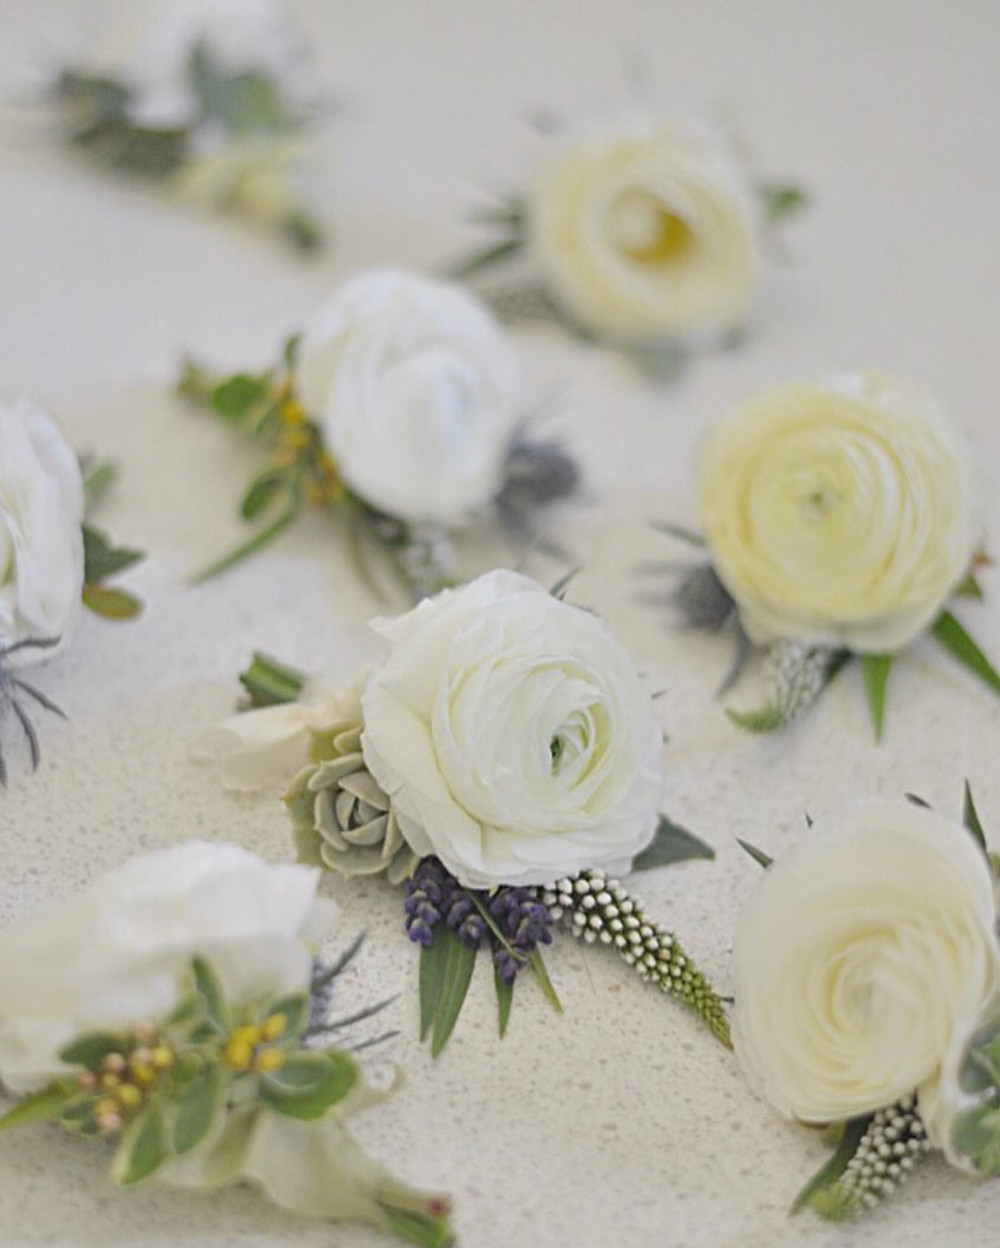 White Ranunculus boutonnieres with white Lysimachias, Lavenders, dusty blue Thistles, Eucalyptus, and small Succulent